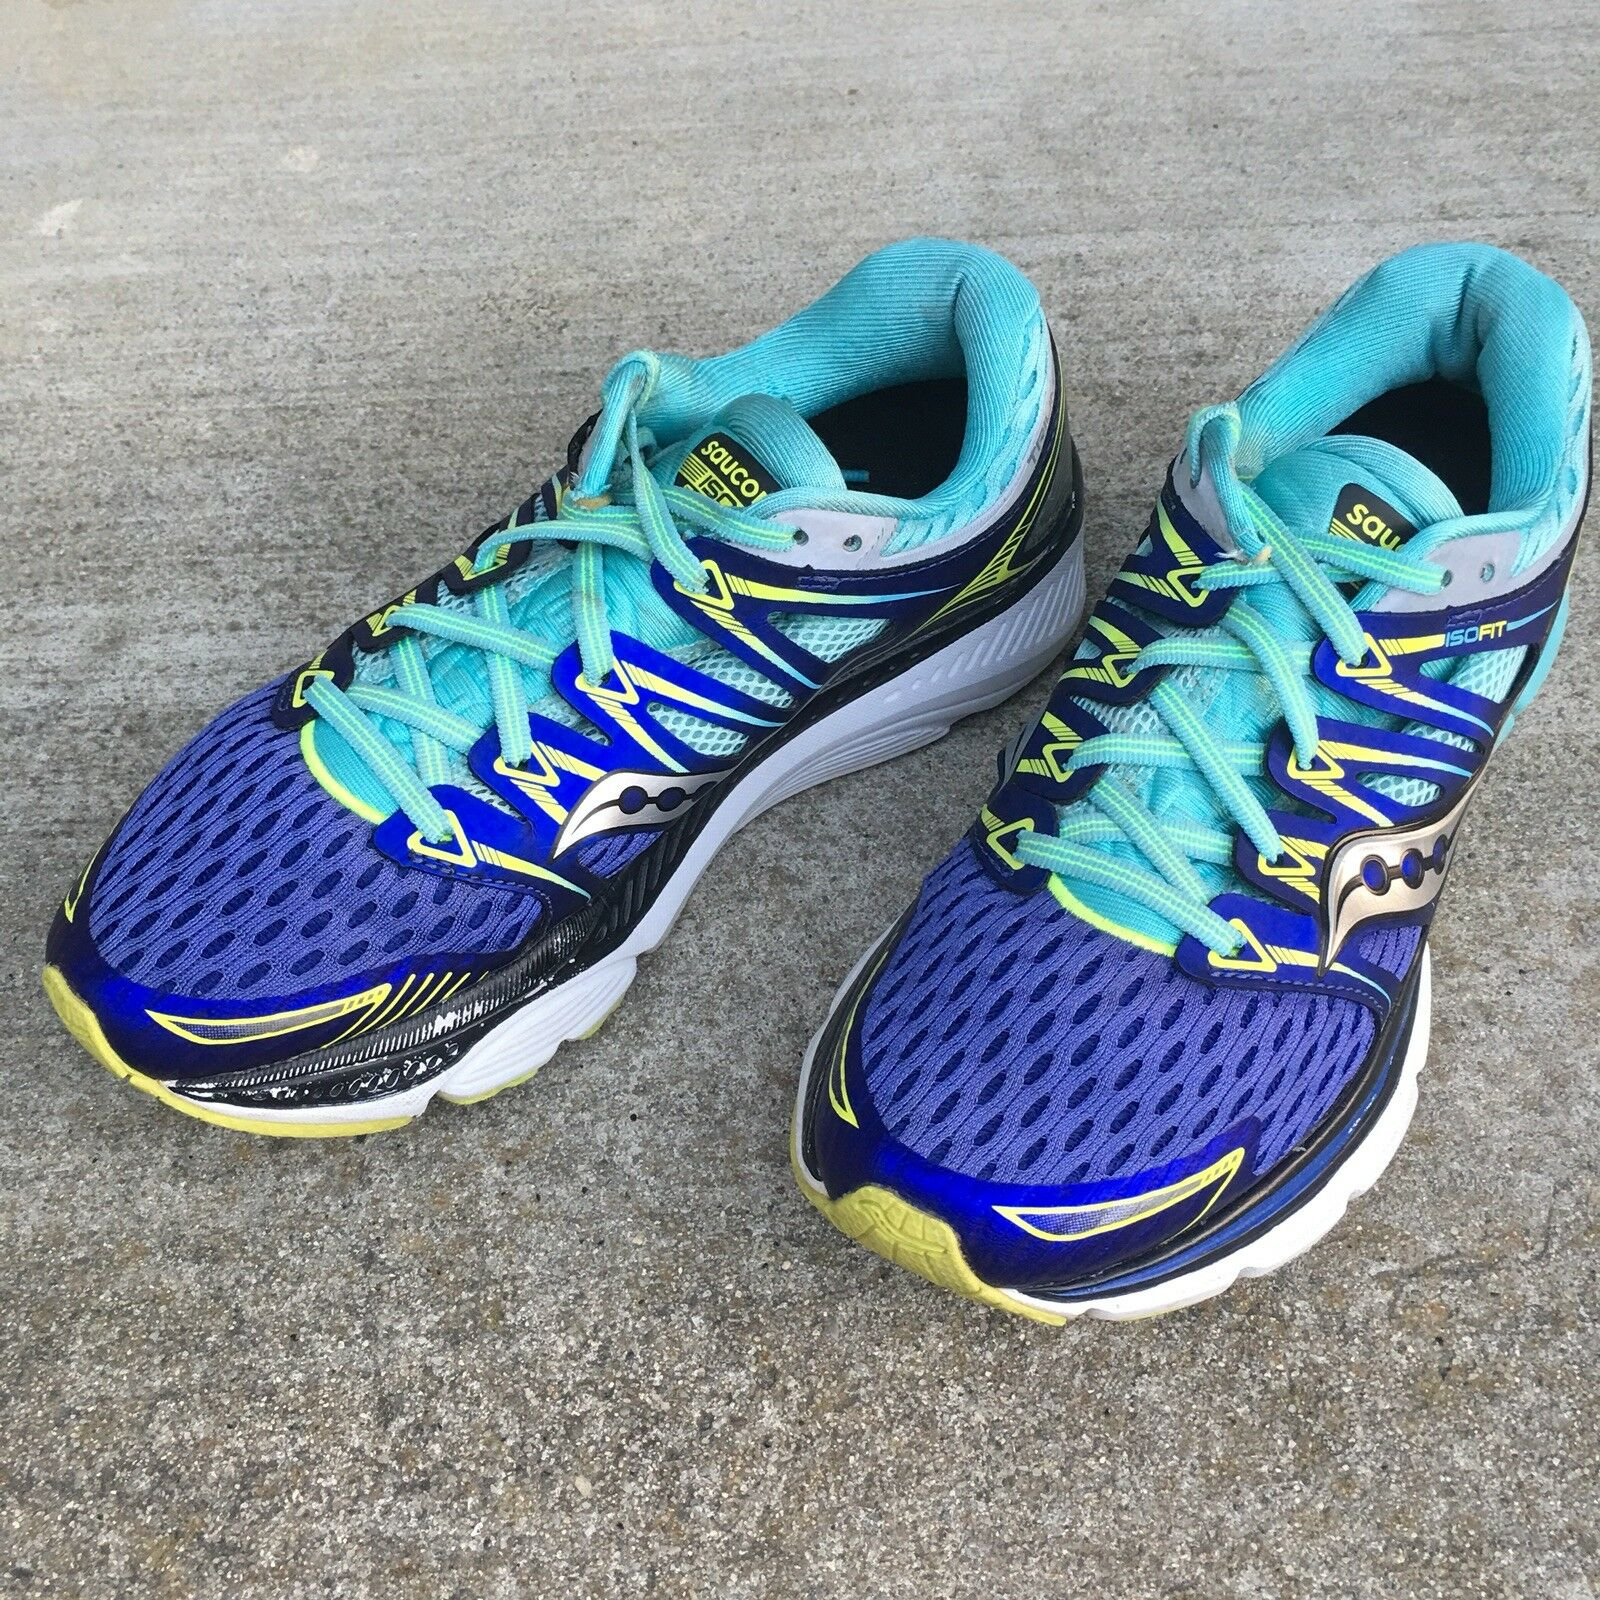 Saucony Everun Triumph ISO Fit bluee Yellow Athletic Running Sneakers shoes Size 7